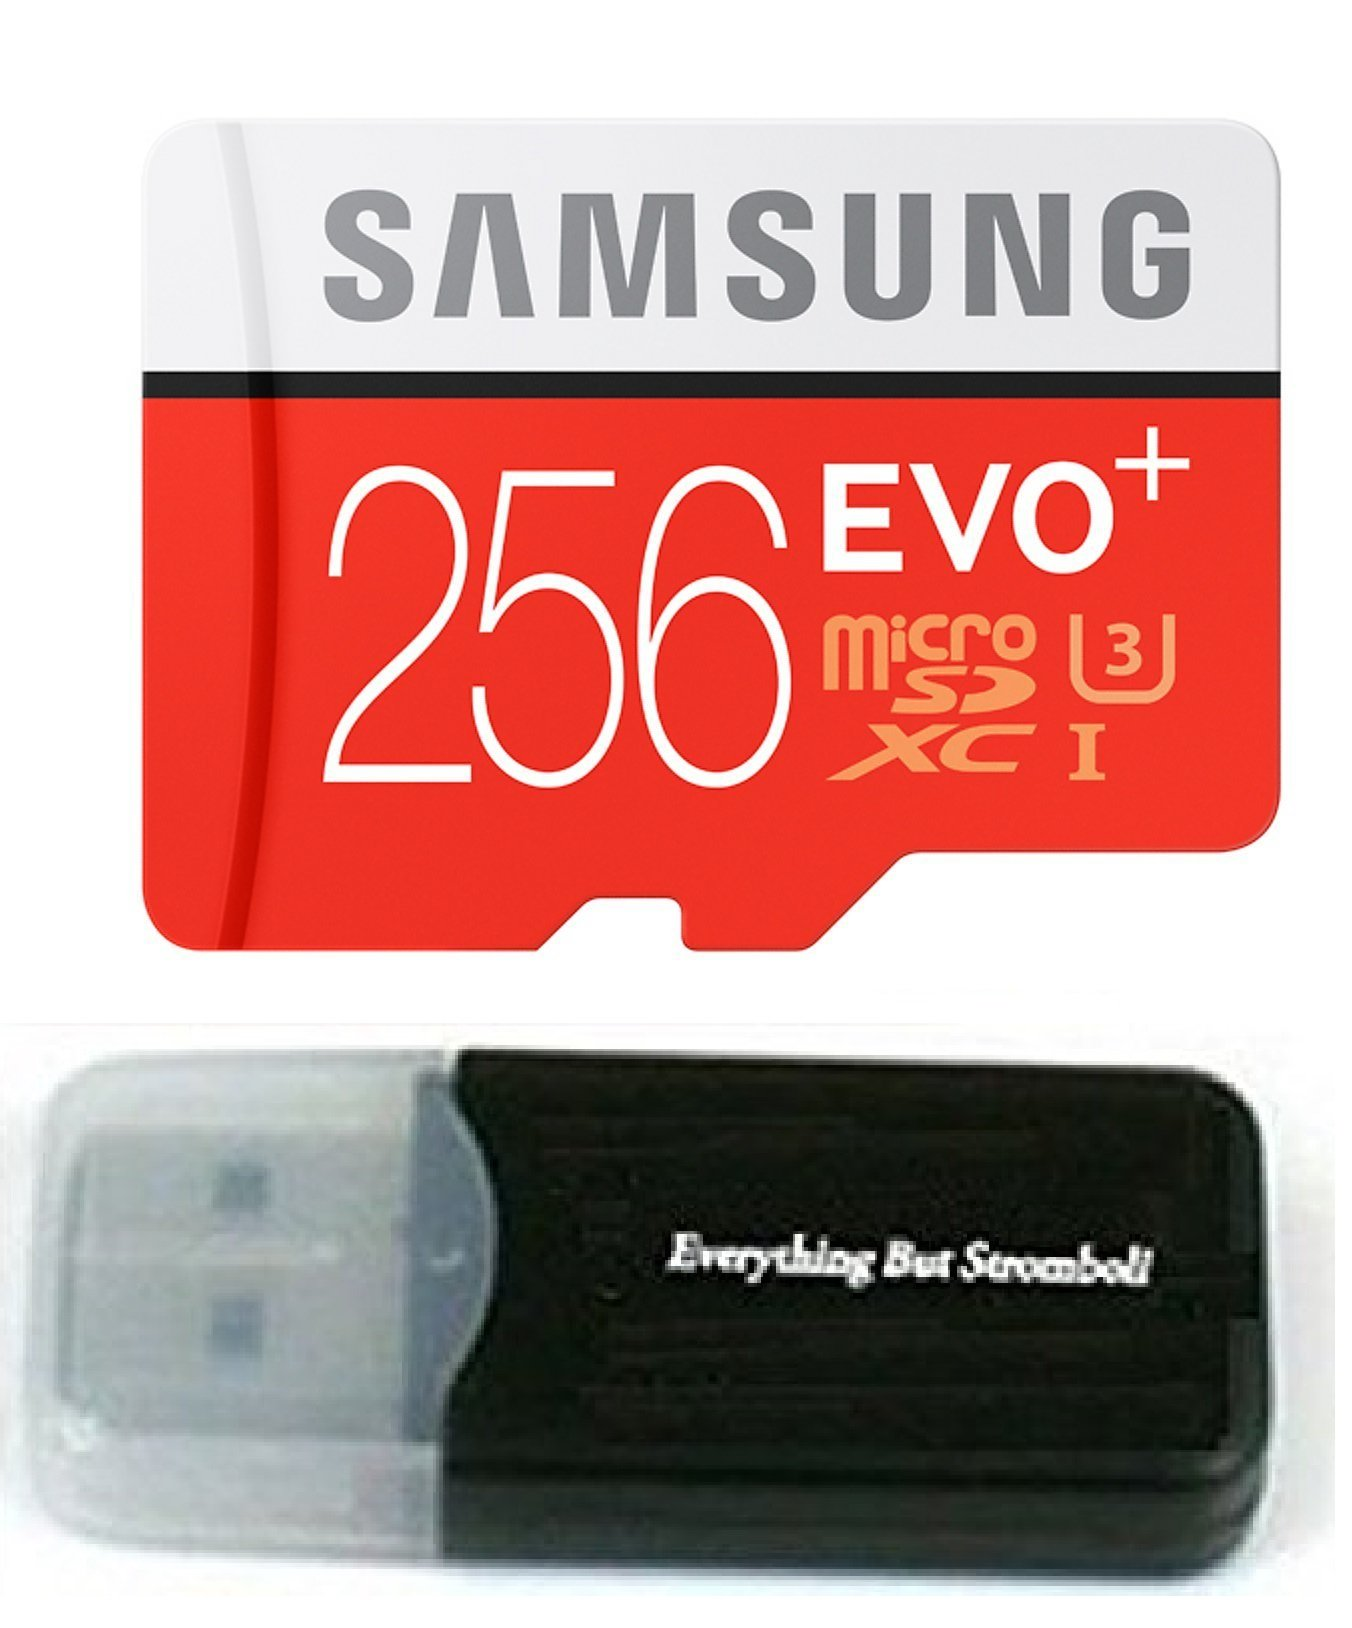 256GB Samsung Evo Plus Micro SD XC Class 10 UHS-1 256G Memory Card for Samsung Galaxy S8, S8+, Note 8, S7, S7 Edge Cell Phone with Everything But Stromboli Card Reader (MB-MC256DA/AM) by Samsung